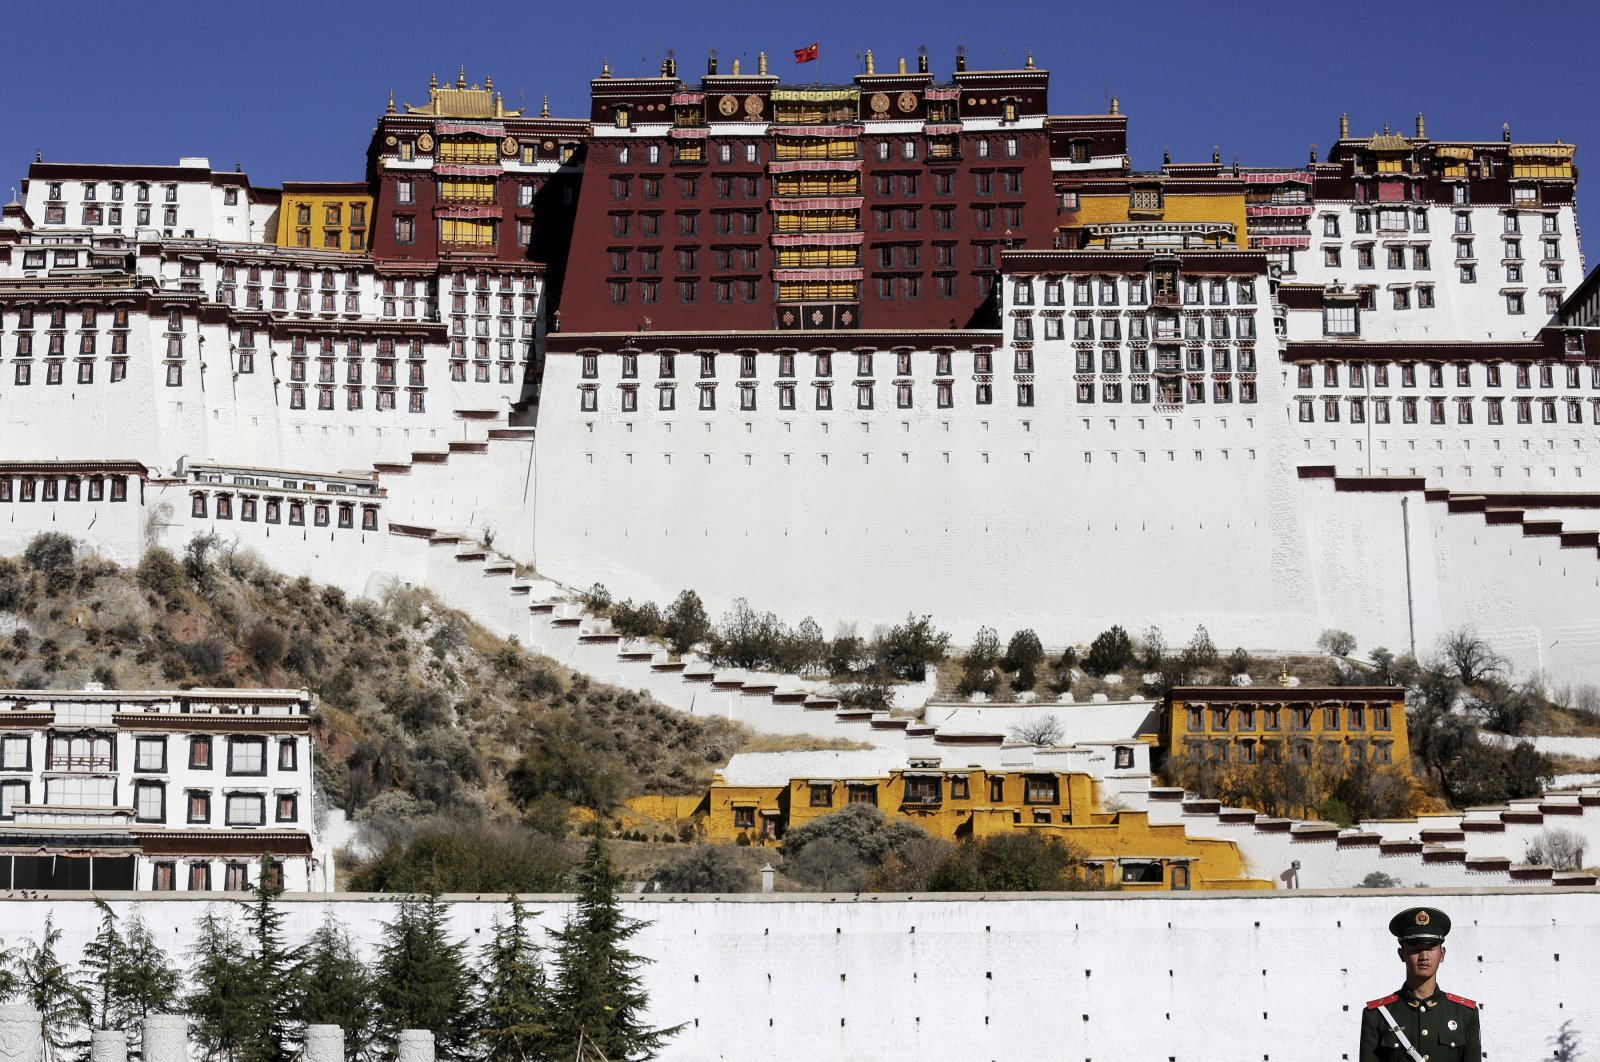 A paramilitary policeman stands guard in front of the Potala Palace in Lhasa, Tibet Autonomous Region, China, Nov. 17, 2015. (Reuters Photo)